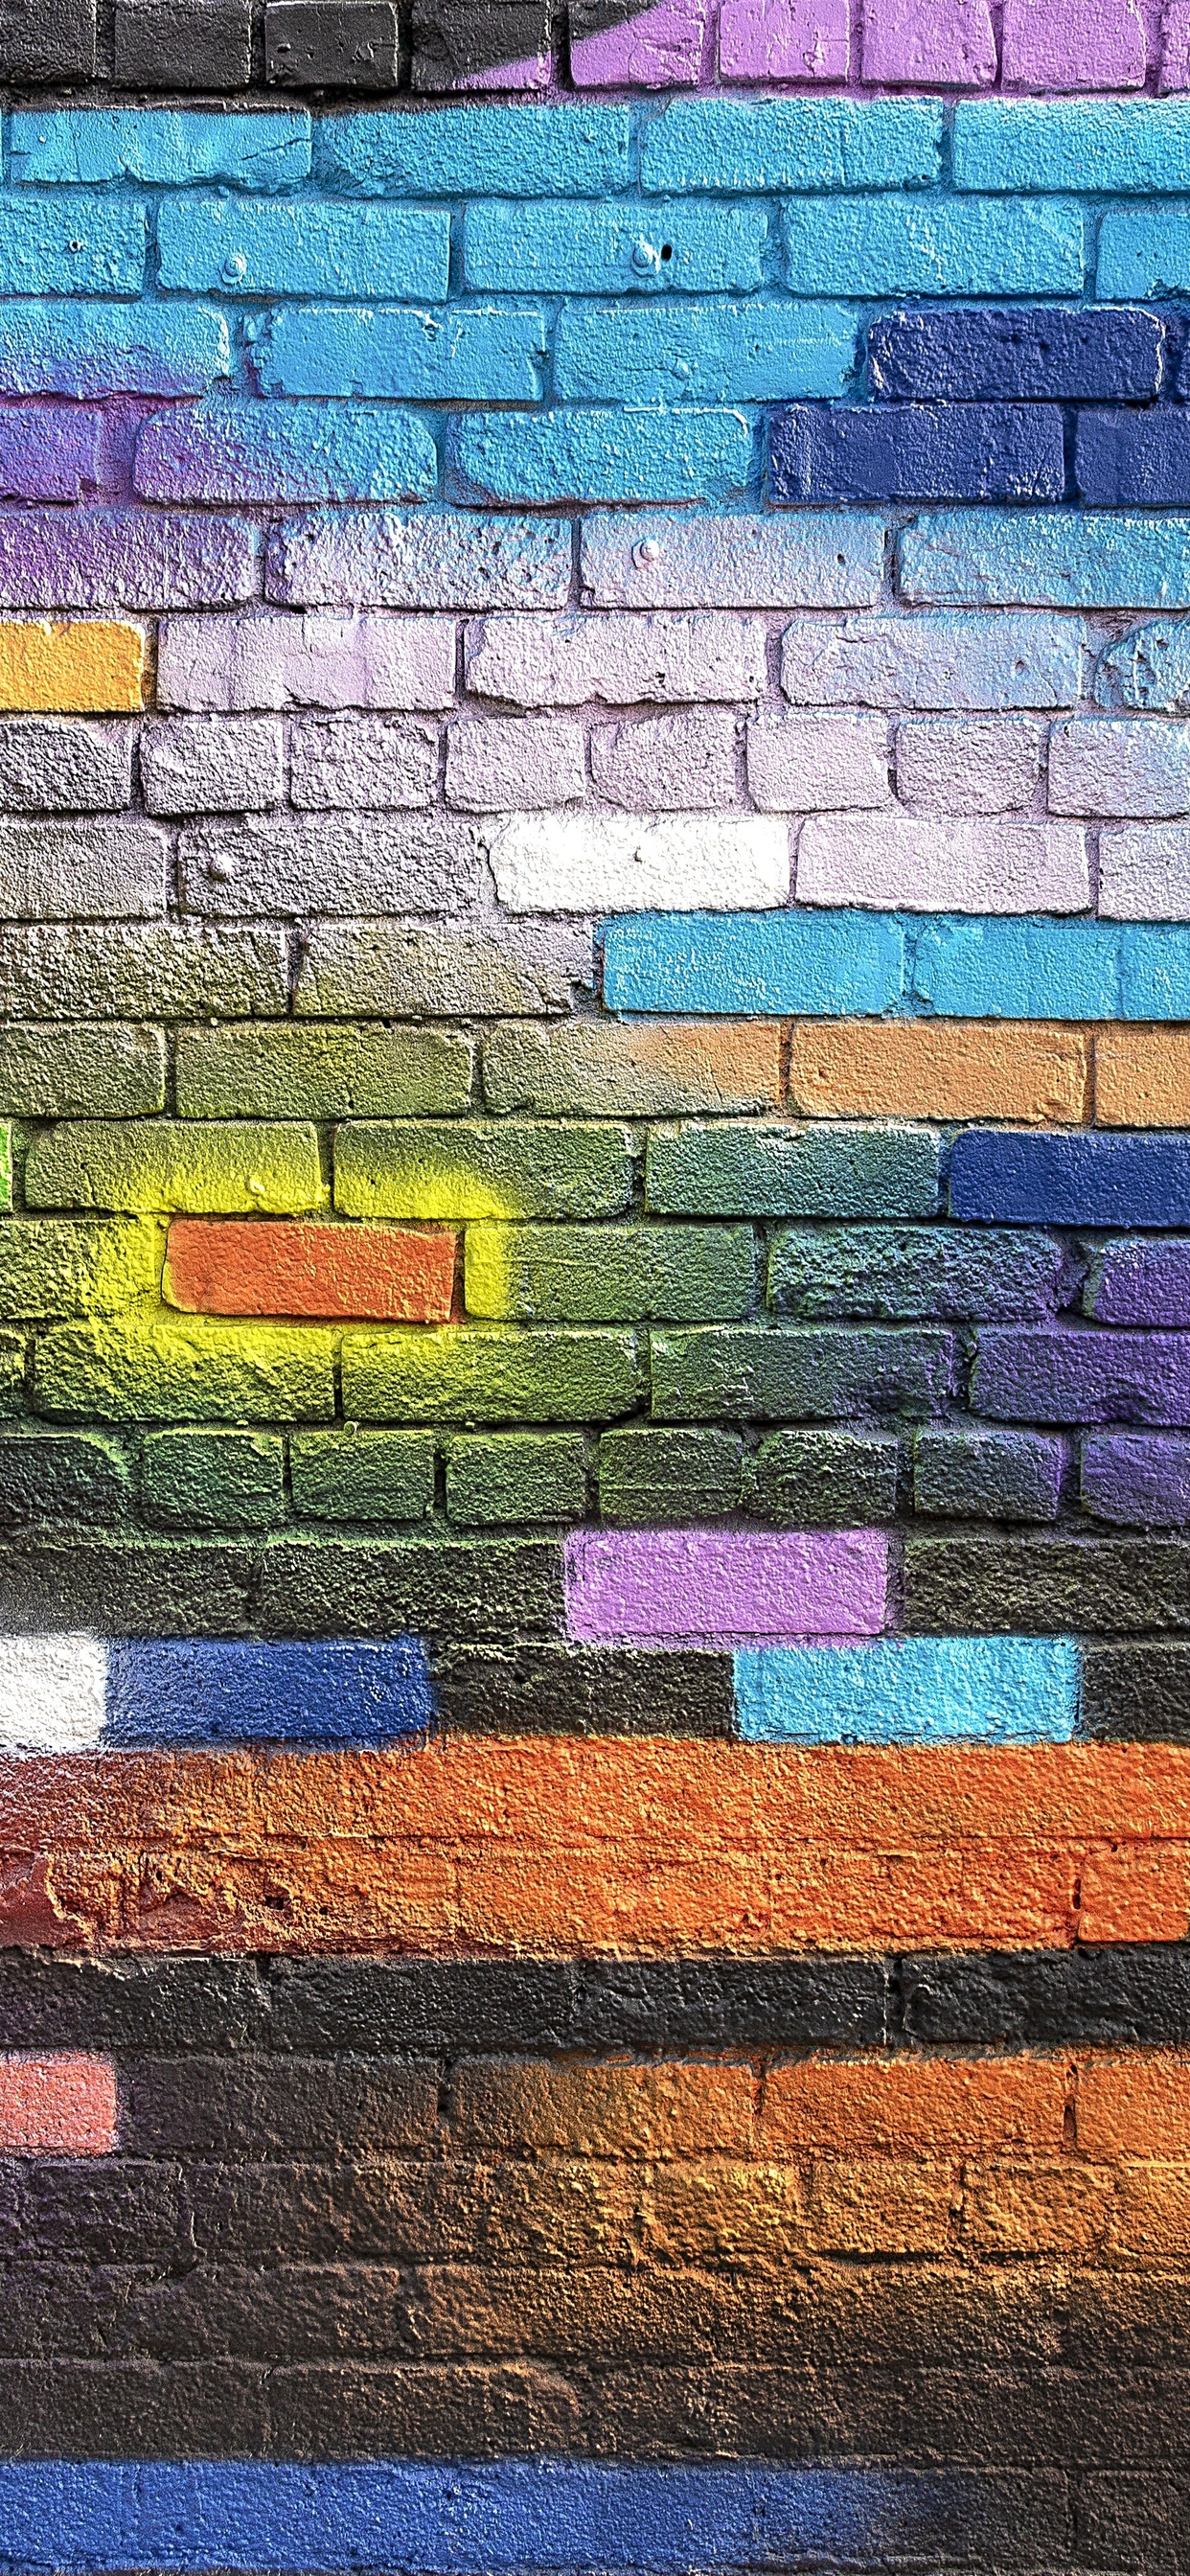 colorful-walls-photography-5k-wh.jpg